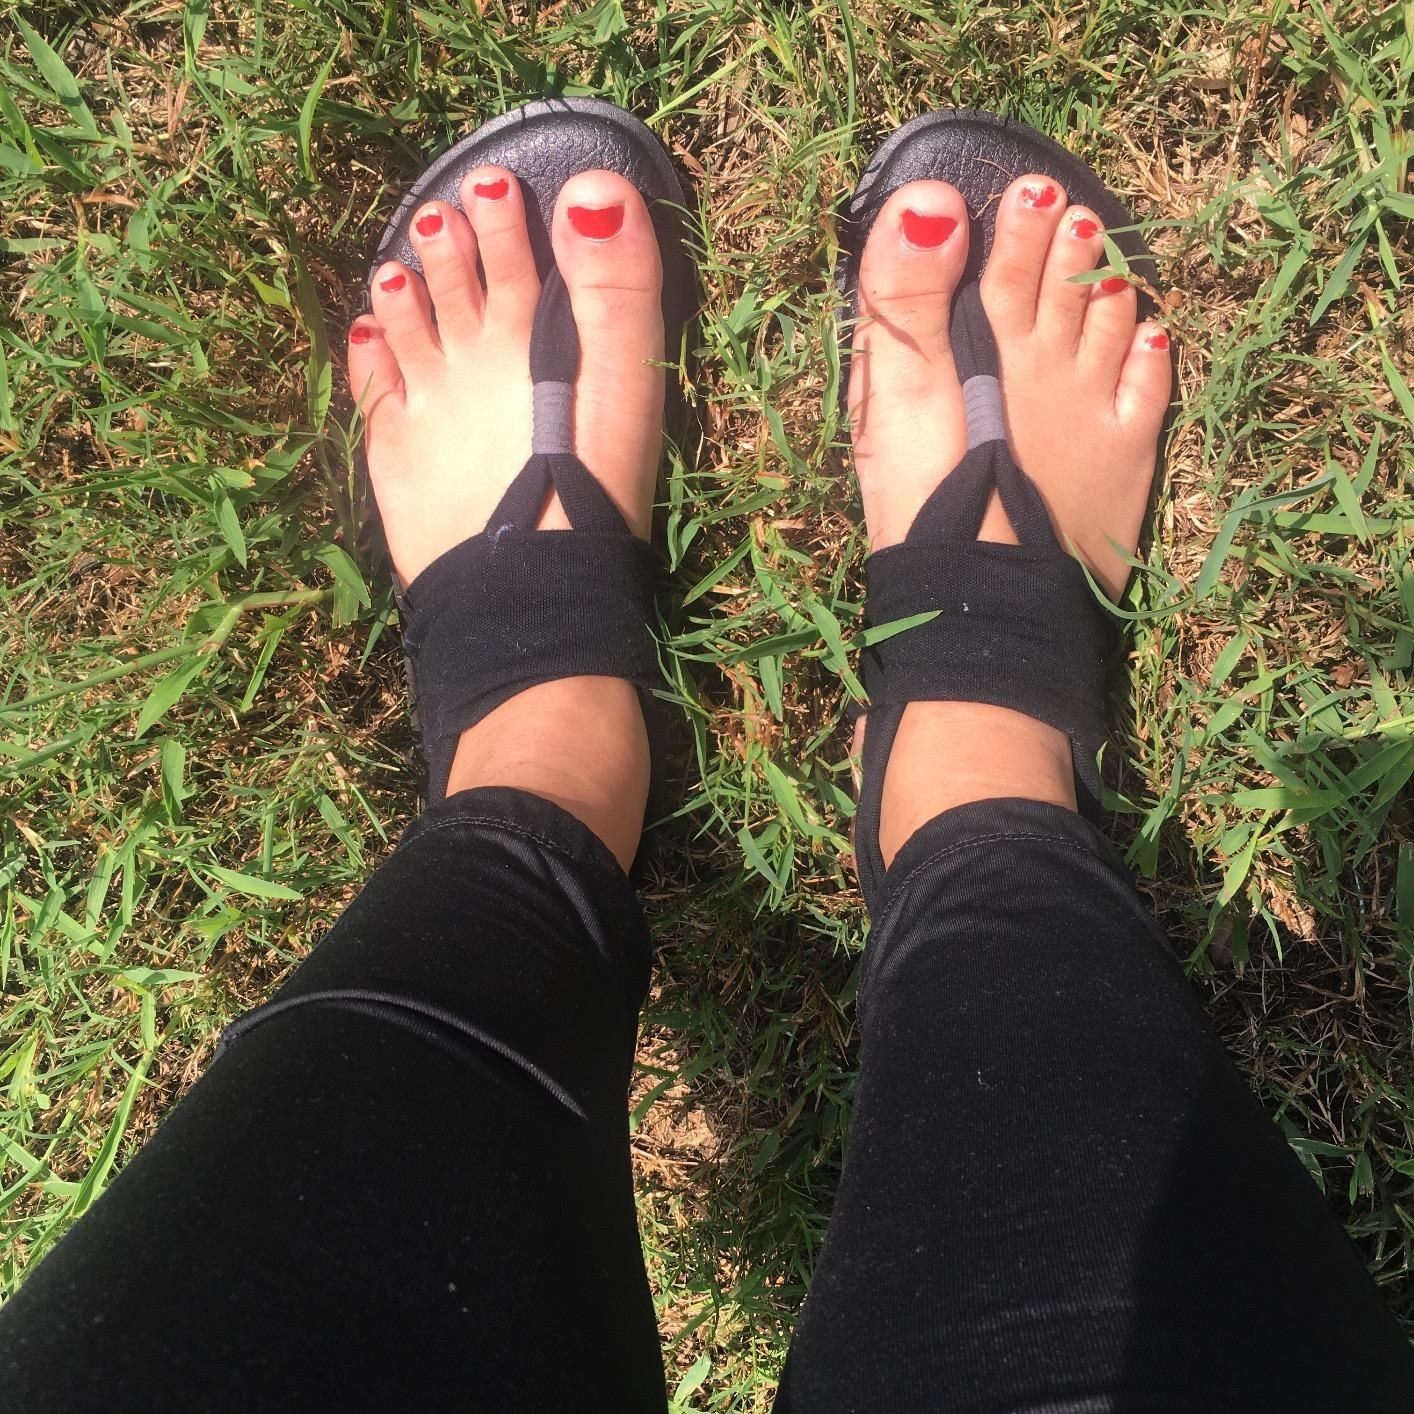 reviewer wearing the flat shoes thong sandals with black soles and black straps